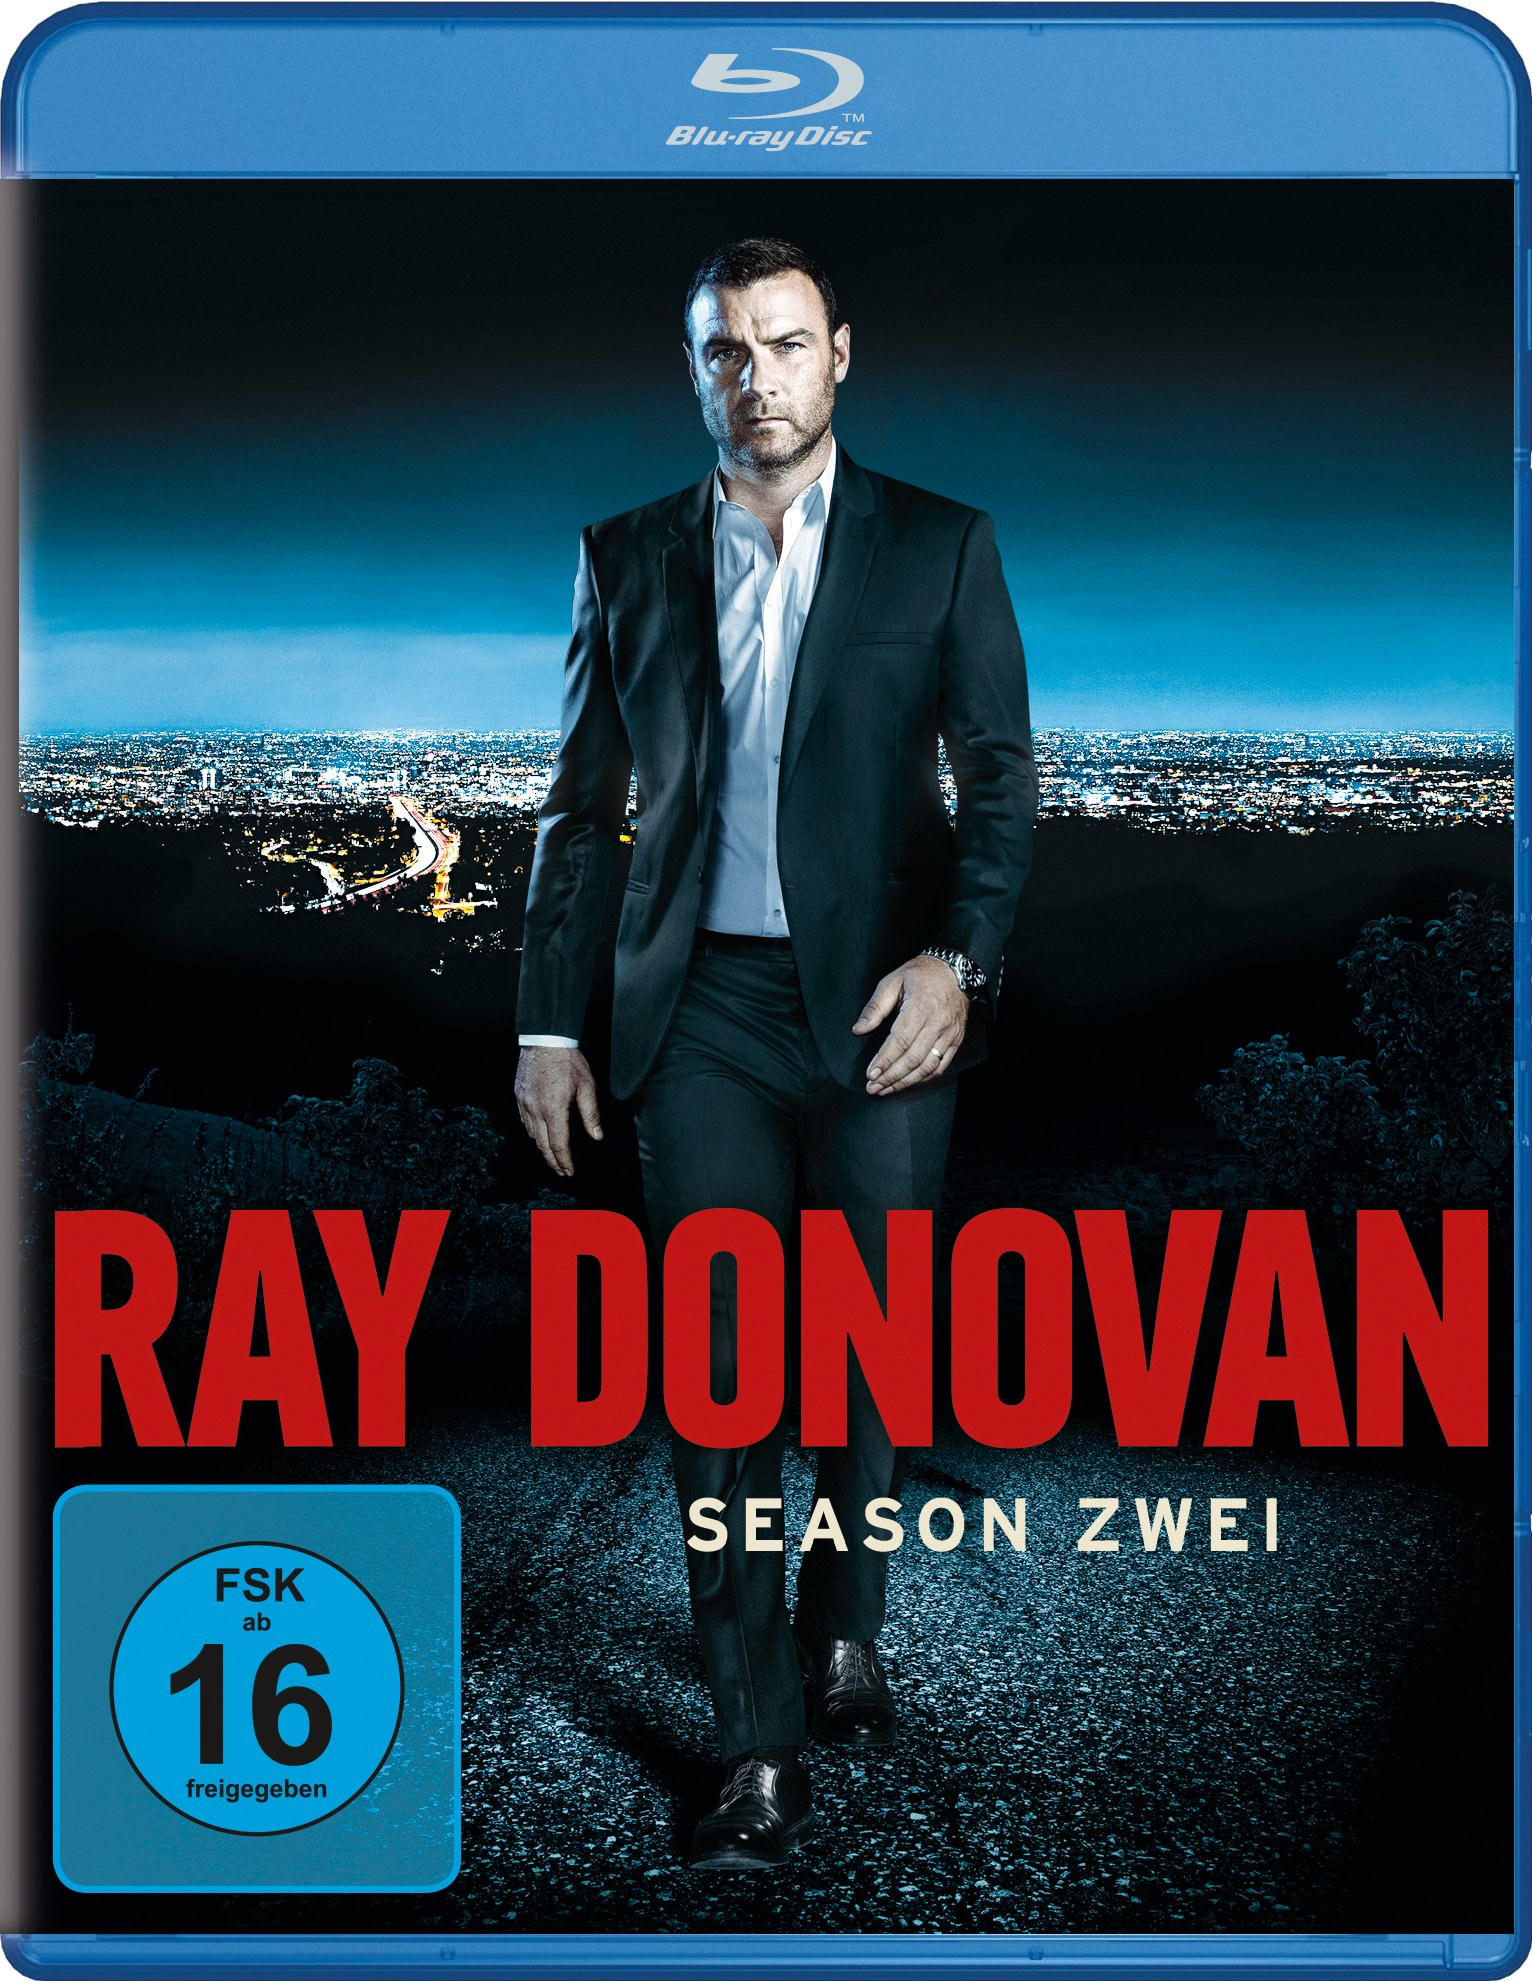 : Ray Donovan s01 s03 Complete German dl 720p BluRay x264 rsg